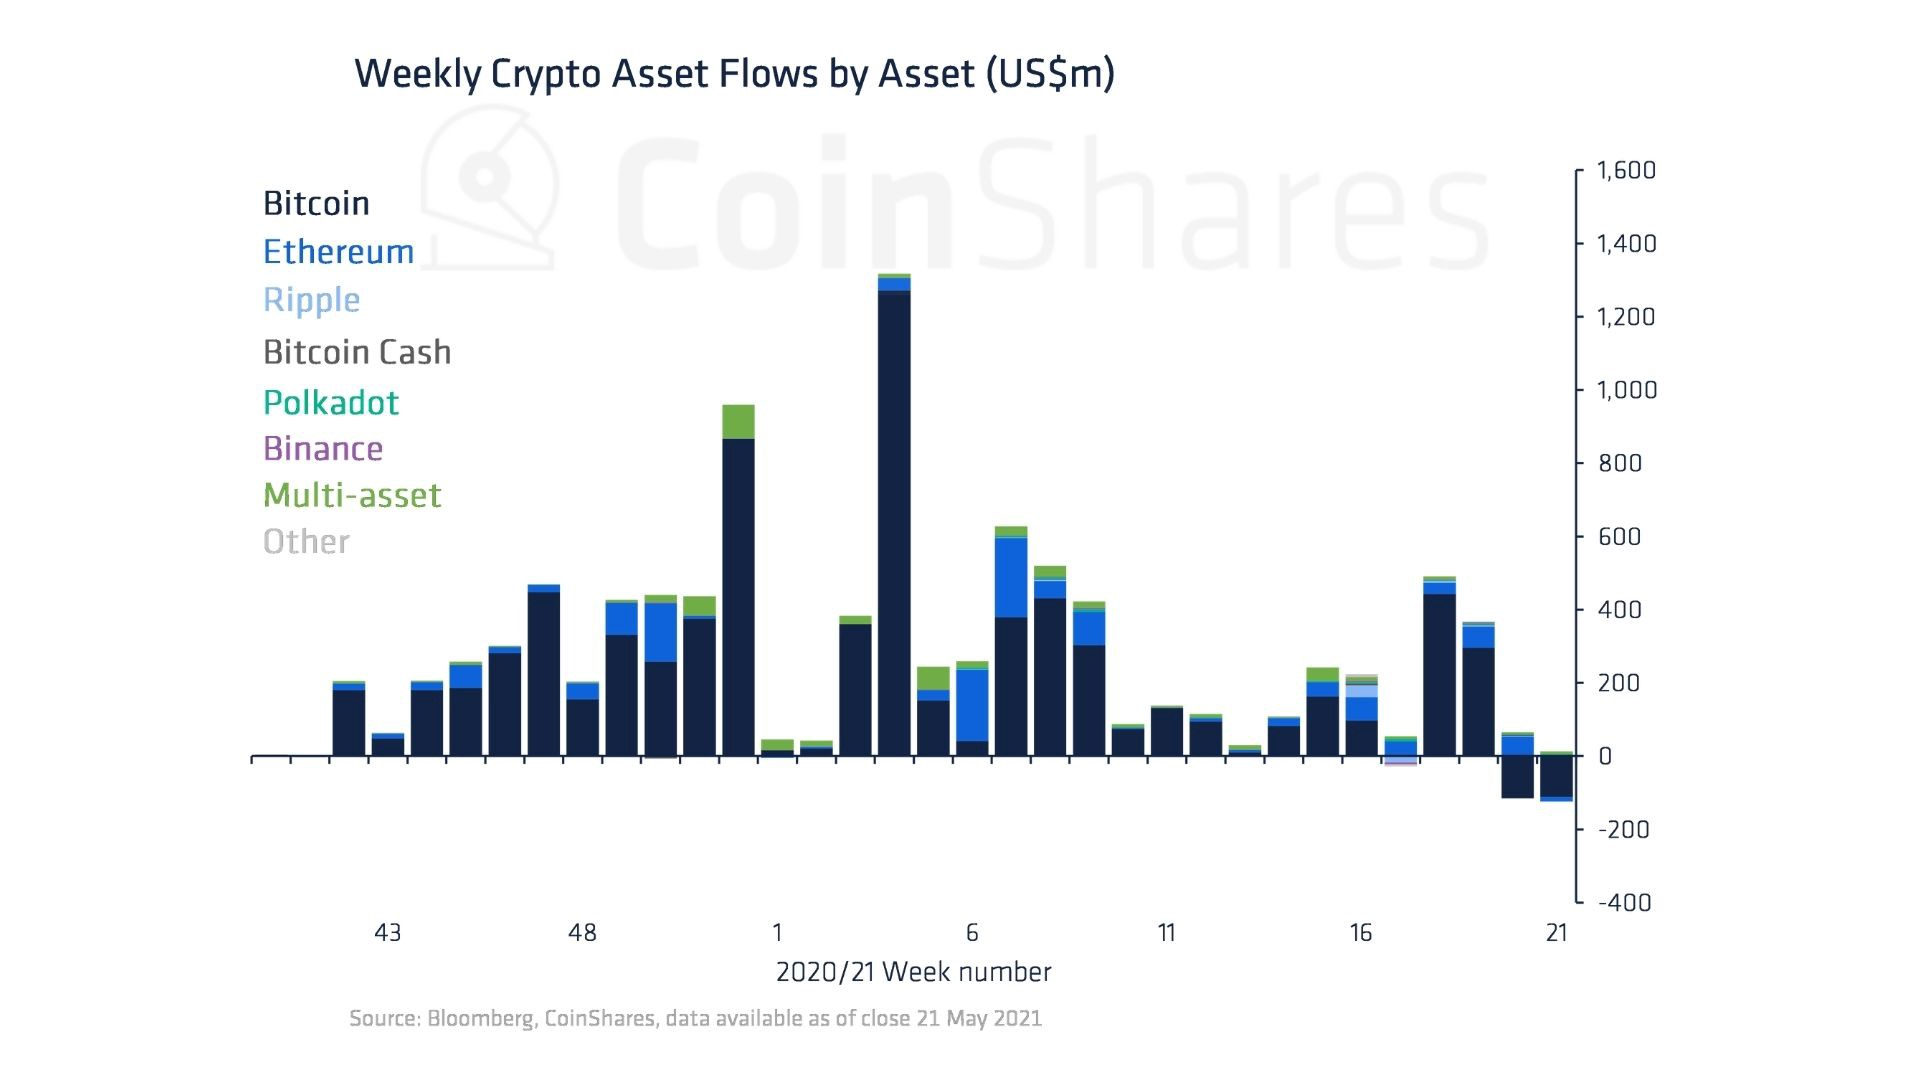 Weekly Crypto Asset Flows by Asset